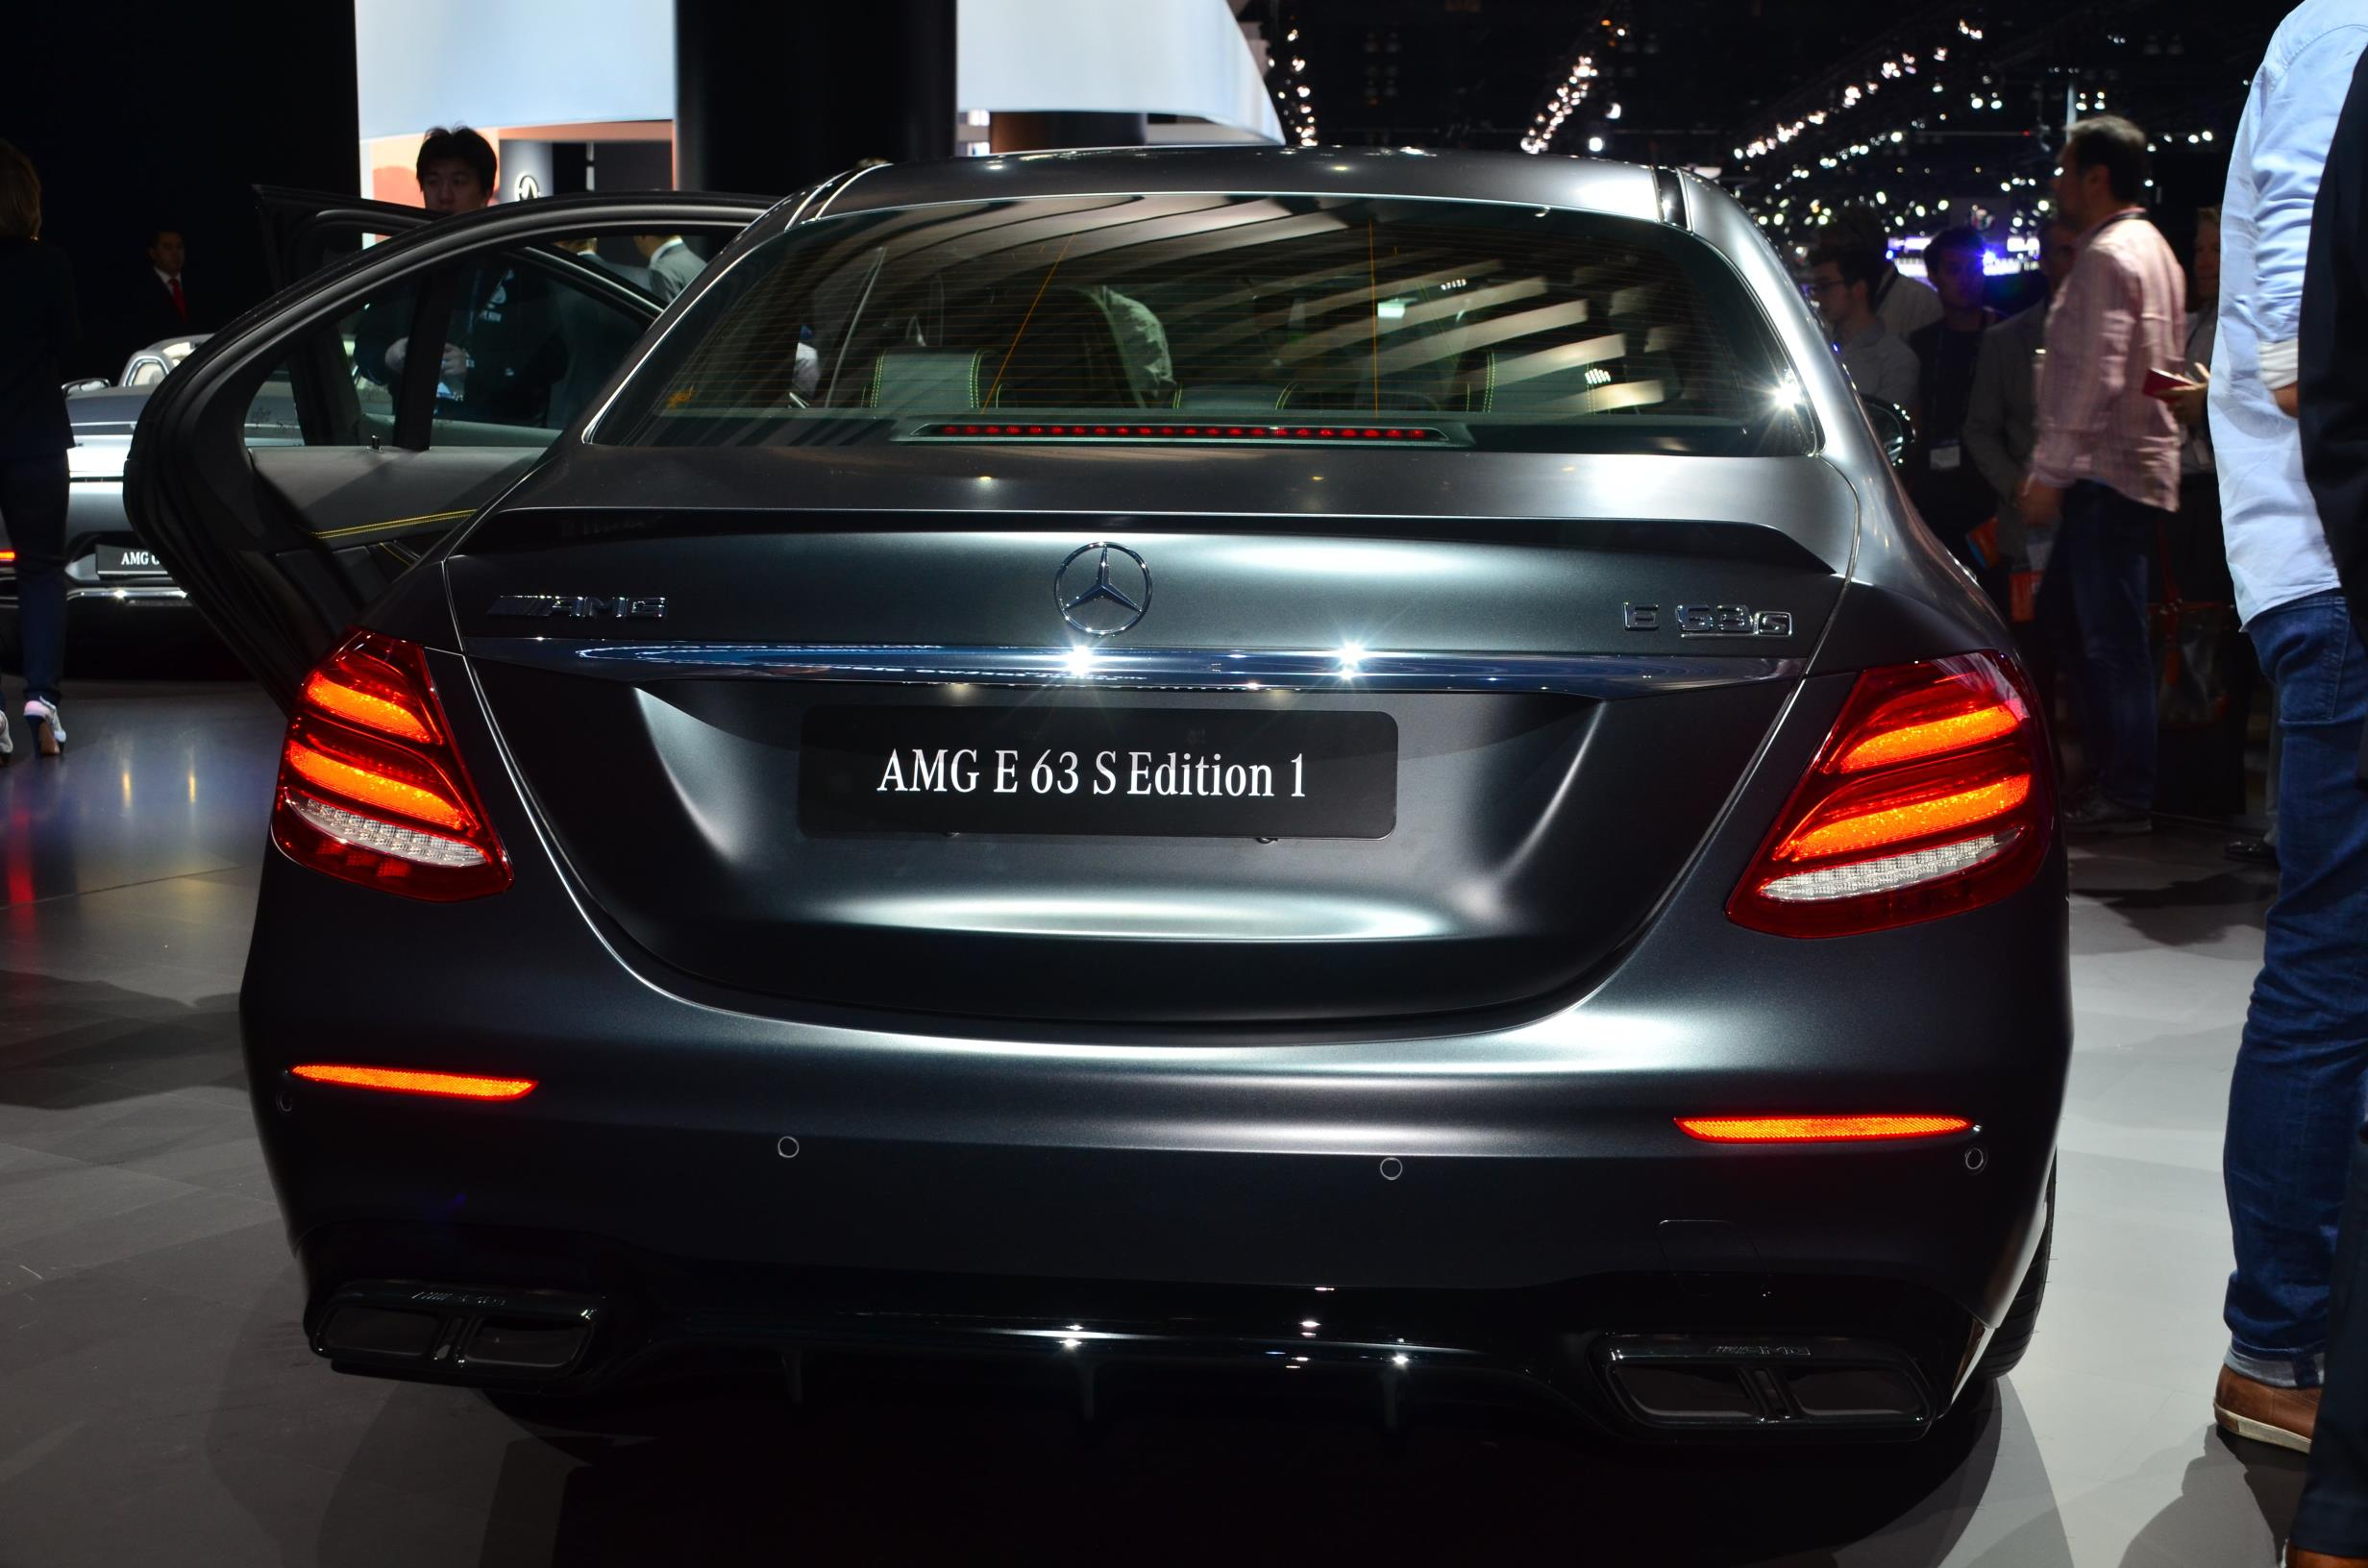 Mercedes-AMG E63 S Edition 1 Is Black at 2016 LA Auto Show ...